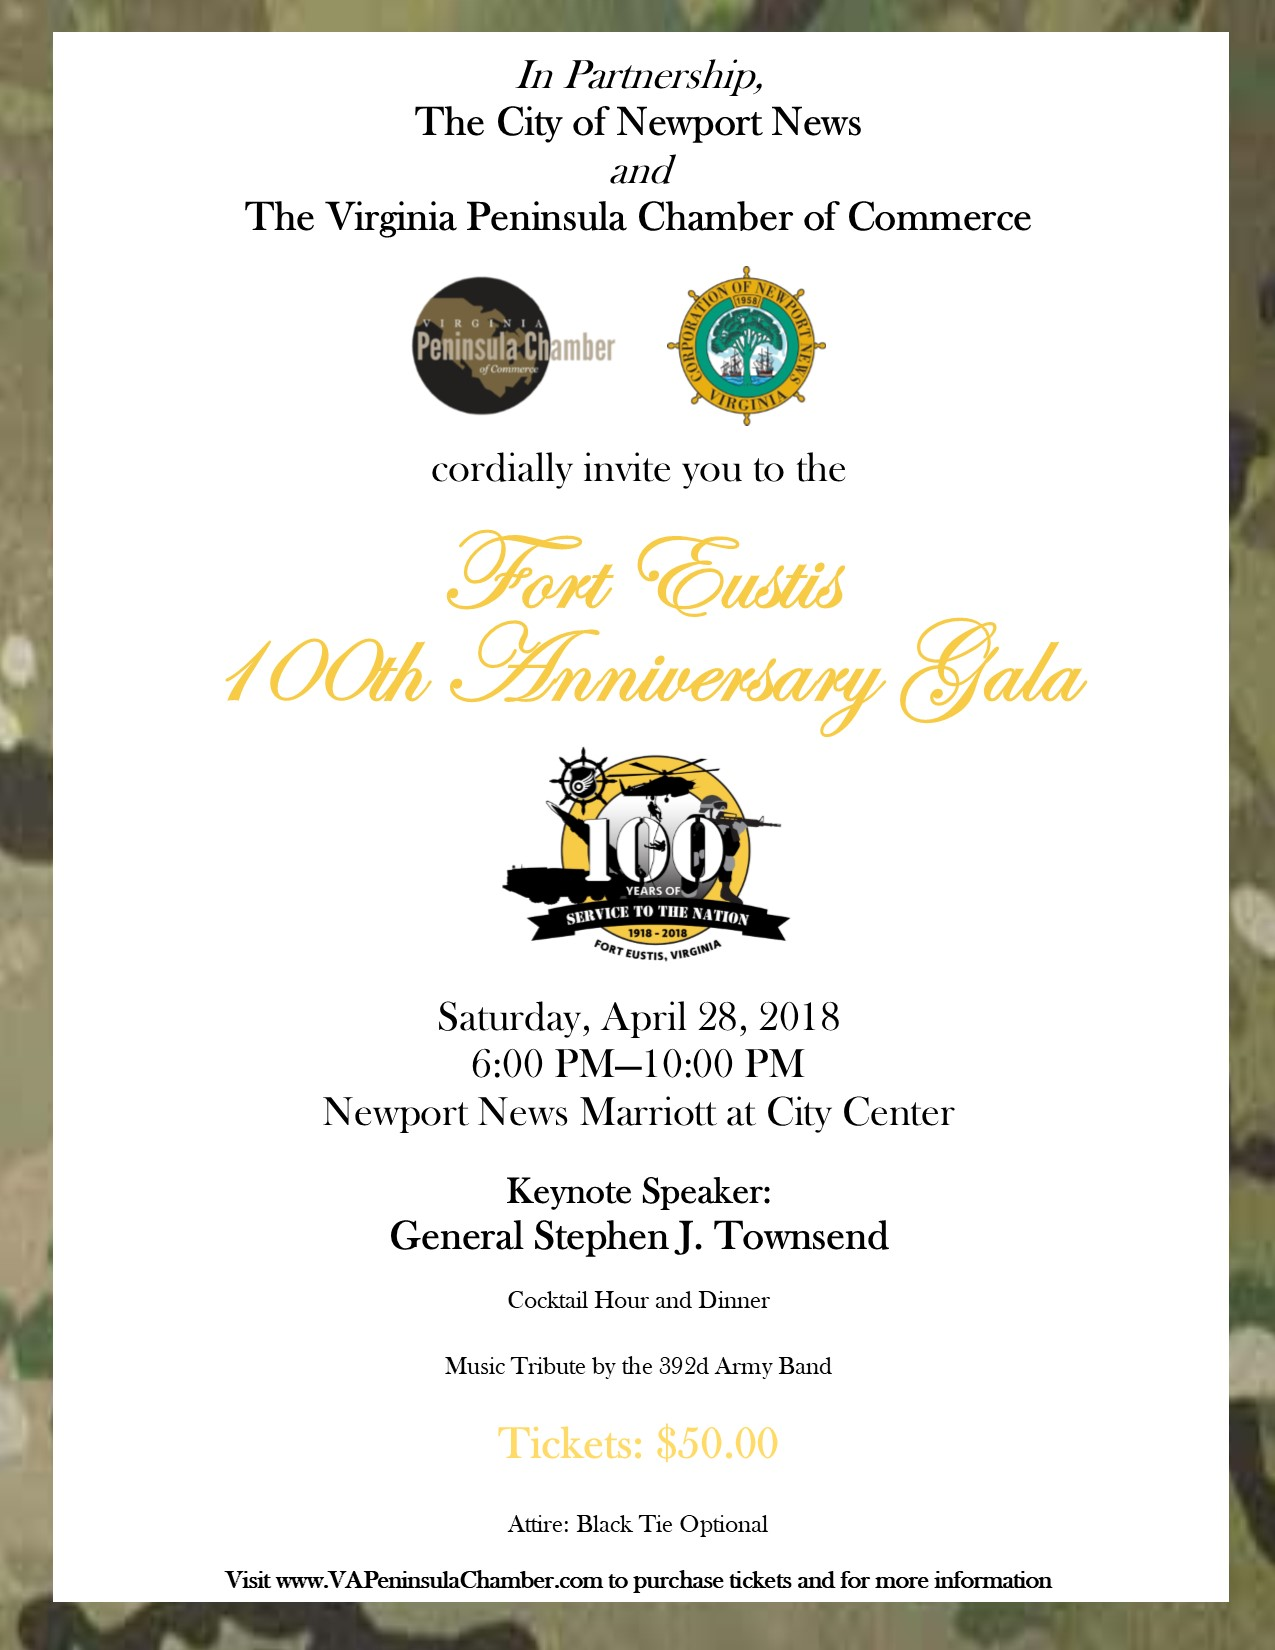 2018-0428-Ft.-Eustis-100th-Anniversary-Gala-(EVENT-FLYER---DRAFT-2).jpg